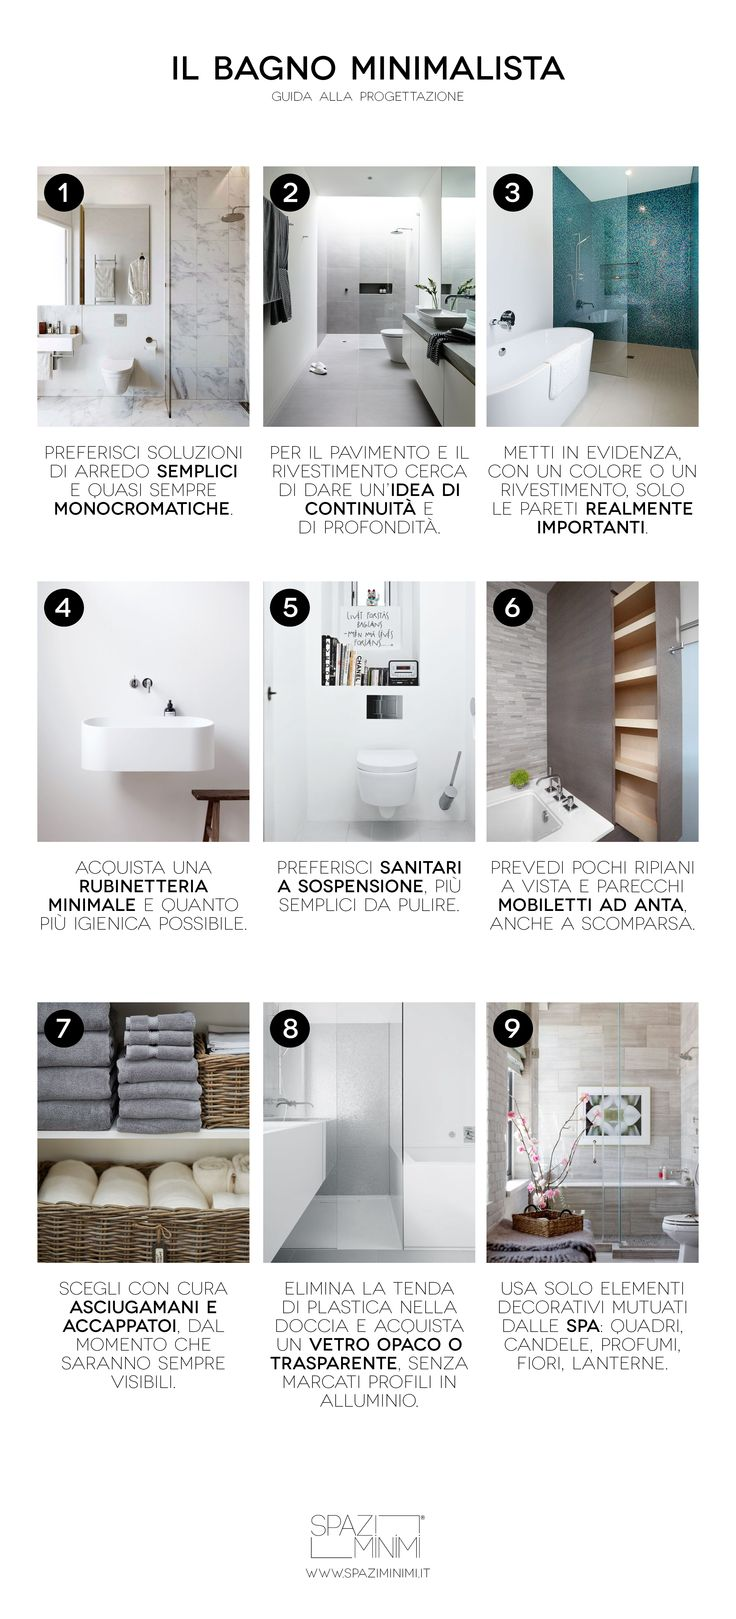 17 Best images about Bagni Minimalisti on Pinterest